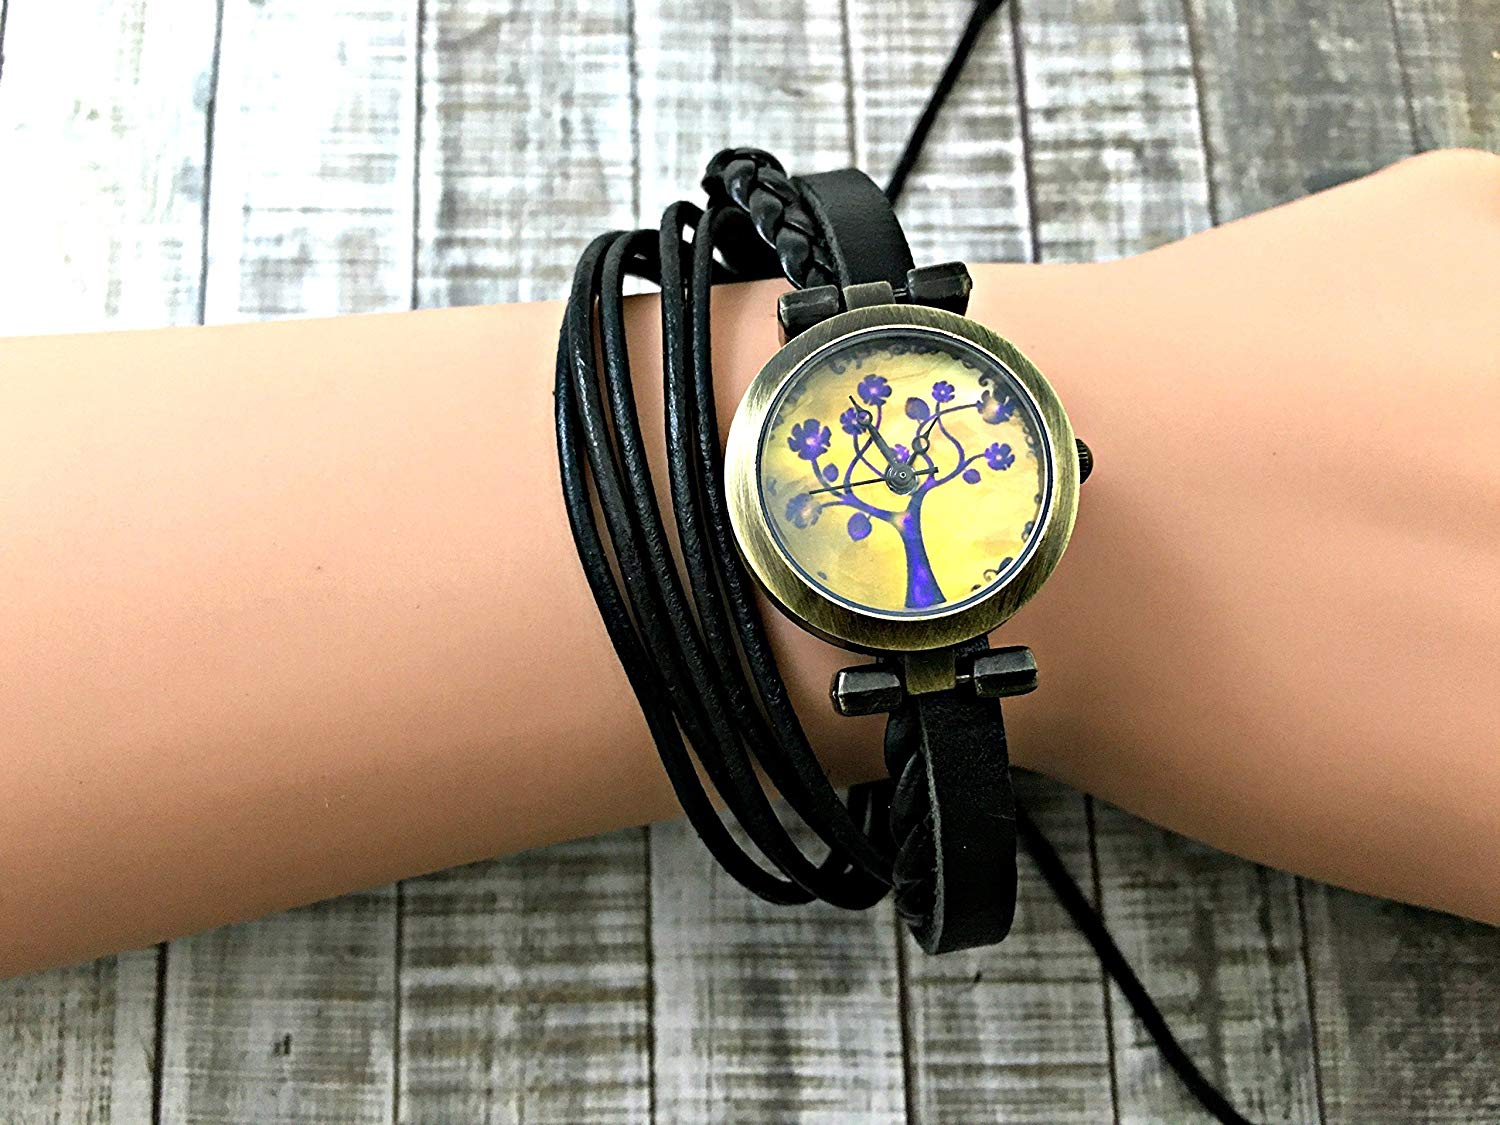 Tree Wrap Bracelet Leather Watch, Leather Wrap Bracelet Watch, Leather Wrap Art Watch, Vintage Retro Wrap Bracelet Watch, Wrap Genuine Leather Watch 013